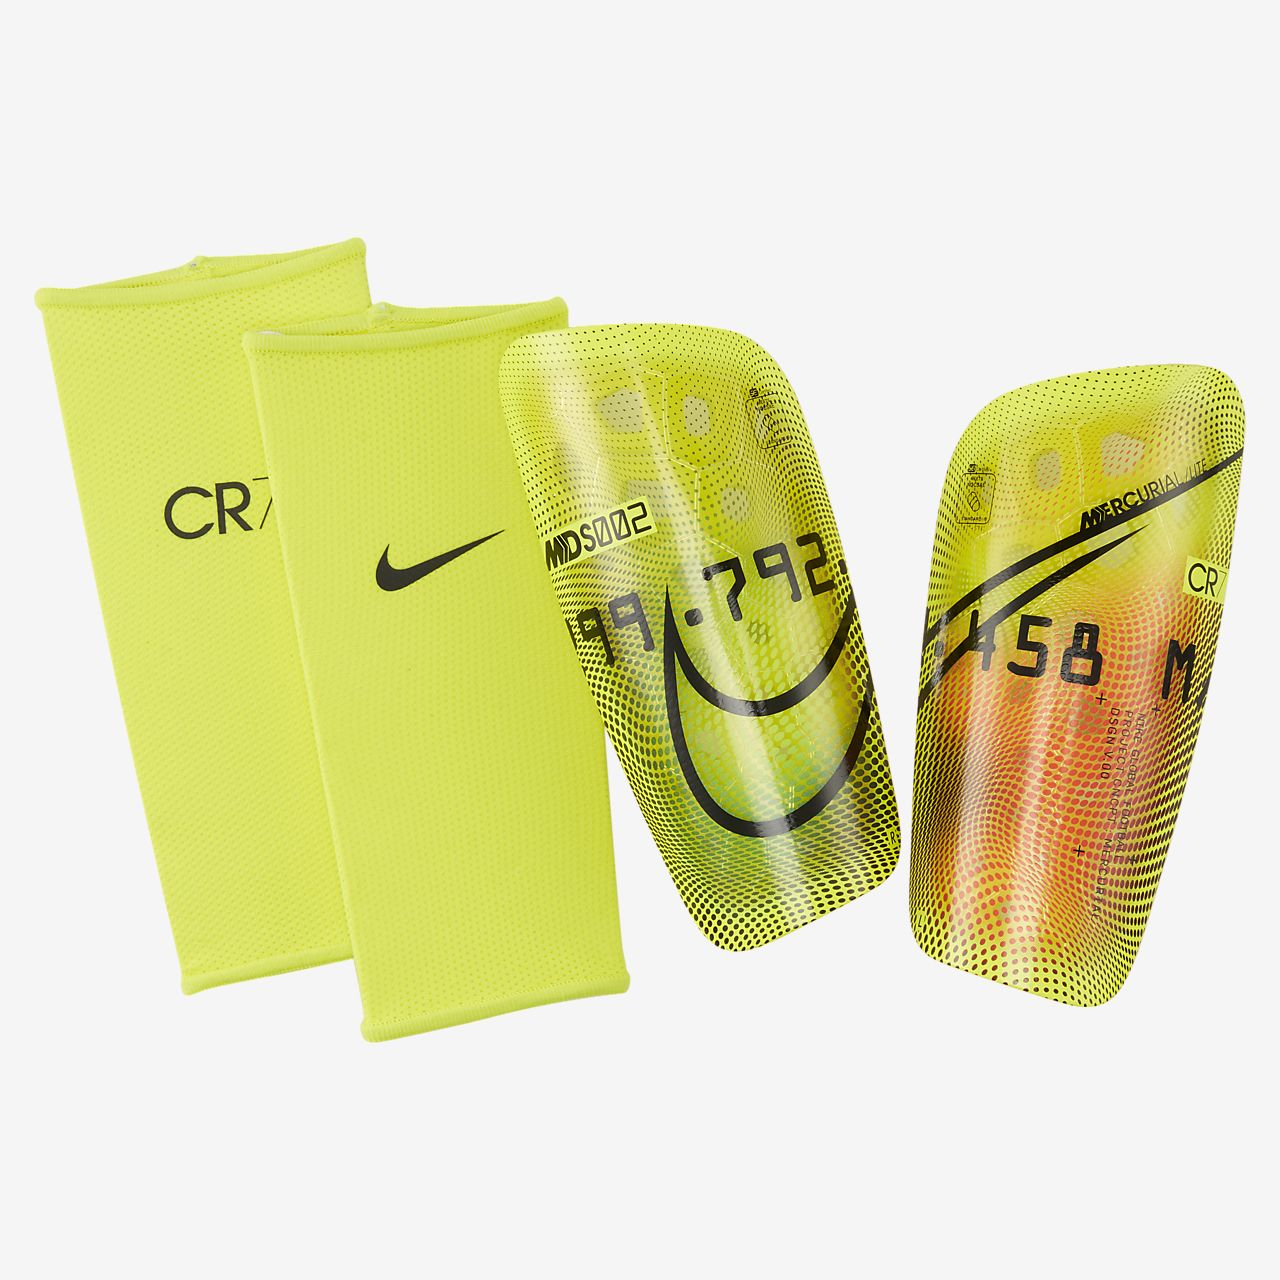 salado Automático 鍔  Nike Mercurial Lite CR7 Soccer Shin Guards. Nike.com